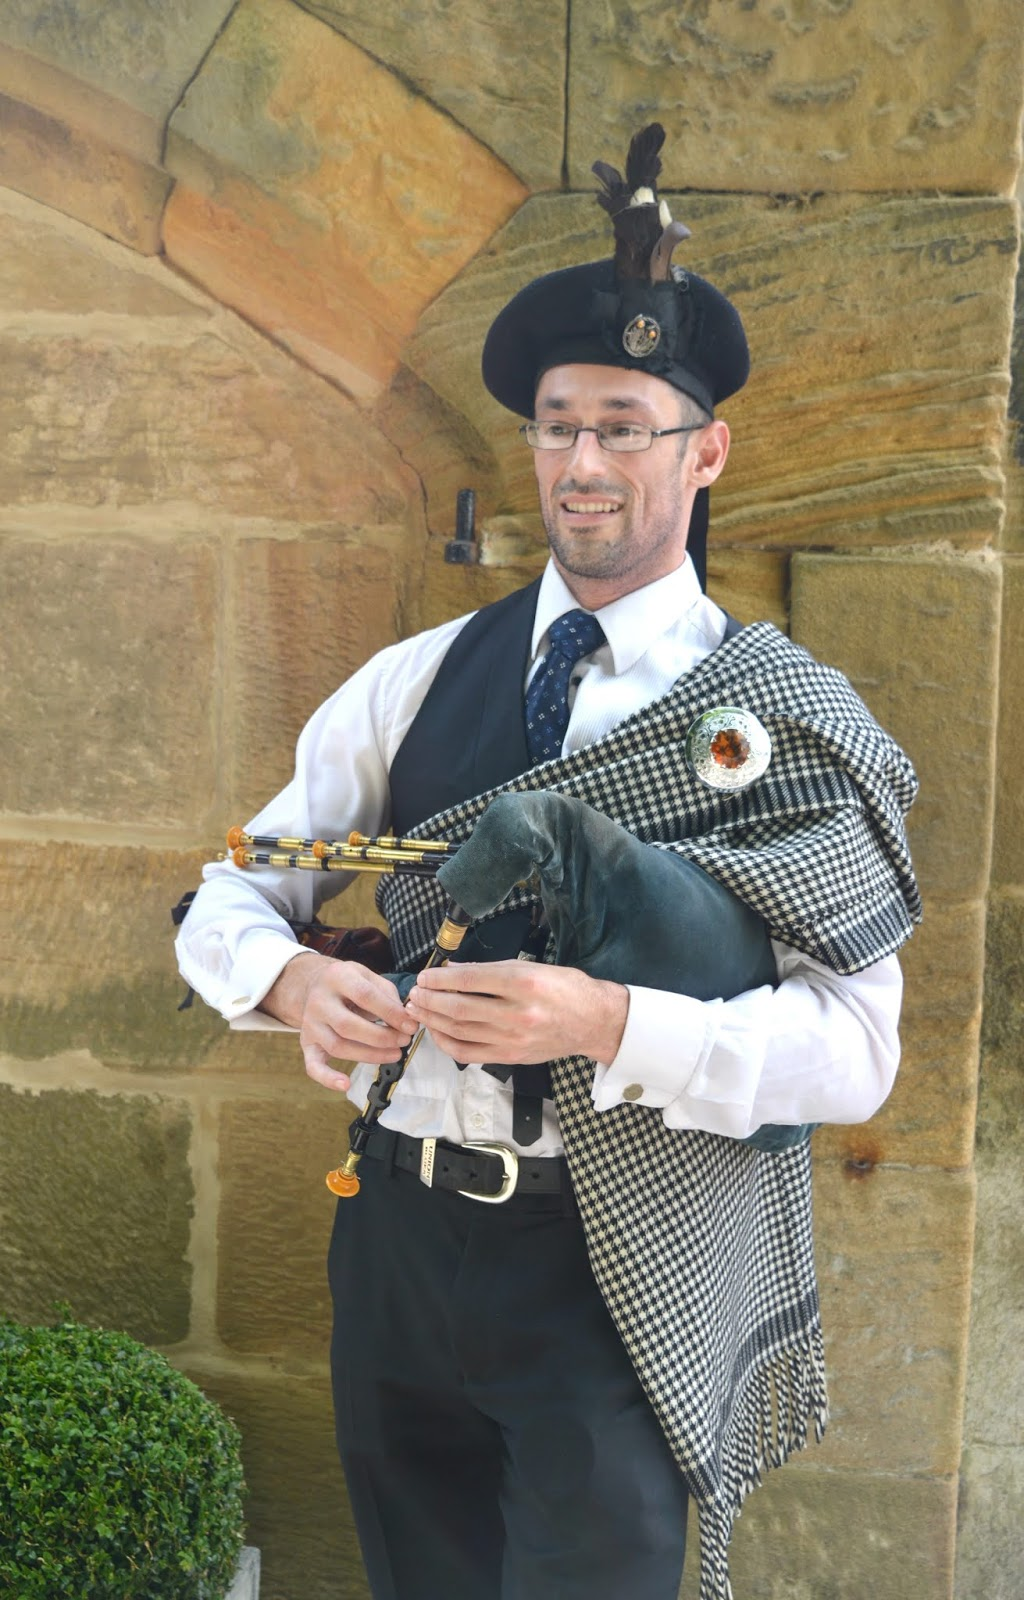 The Music and Dances of Northumberland at Alnwick Garden